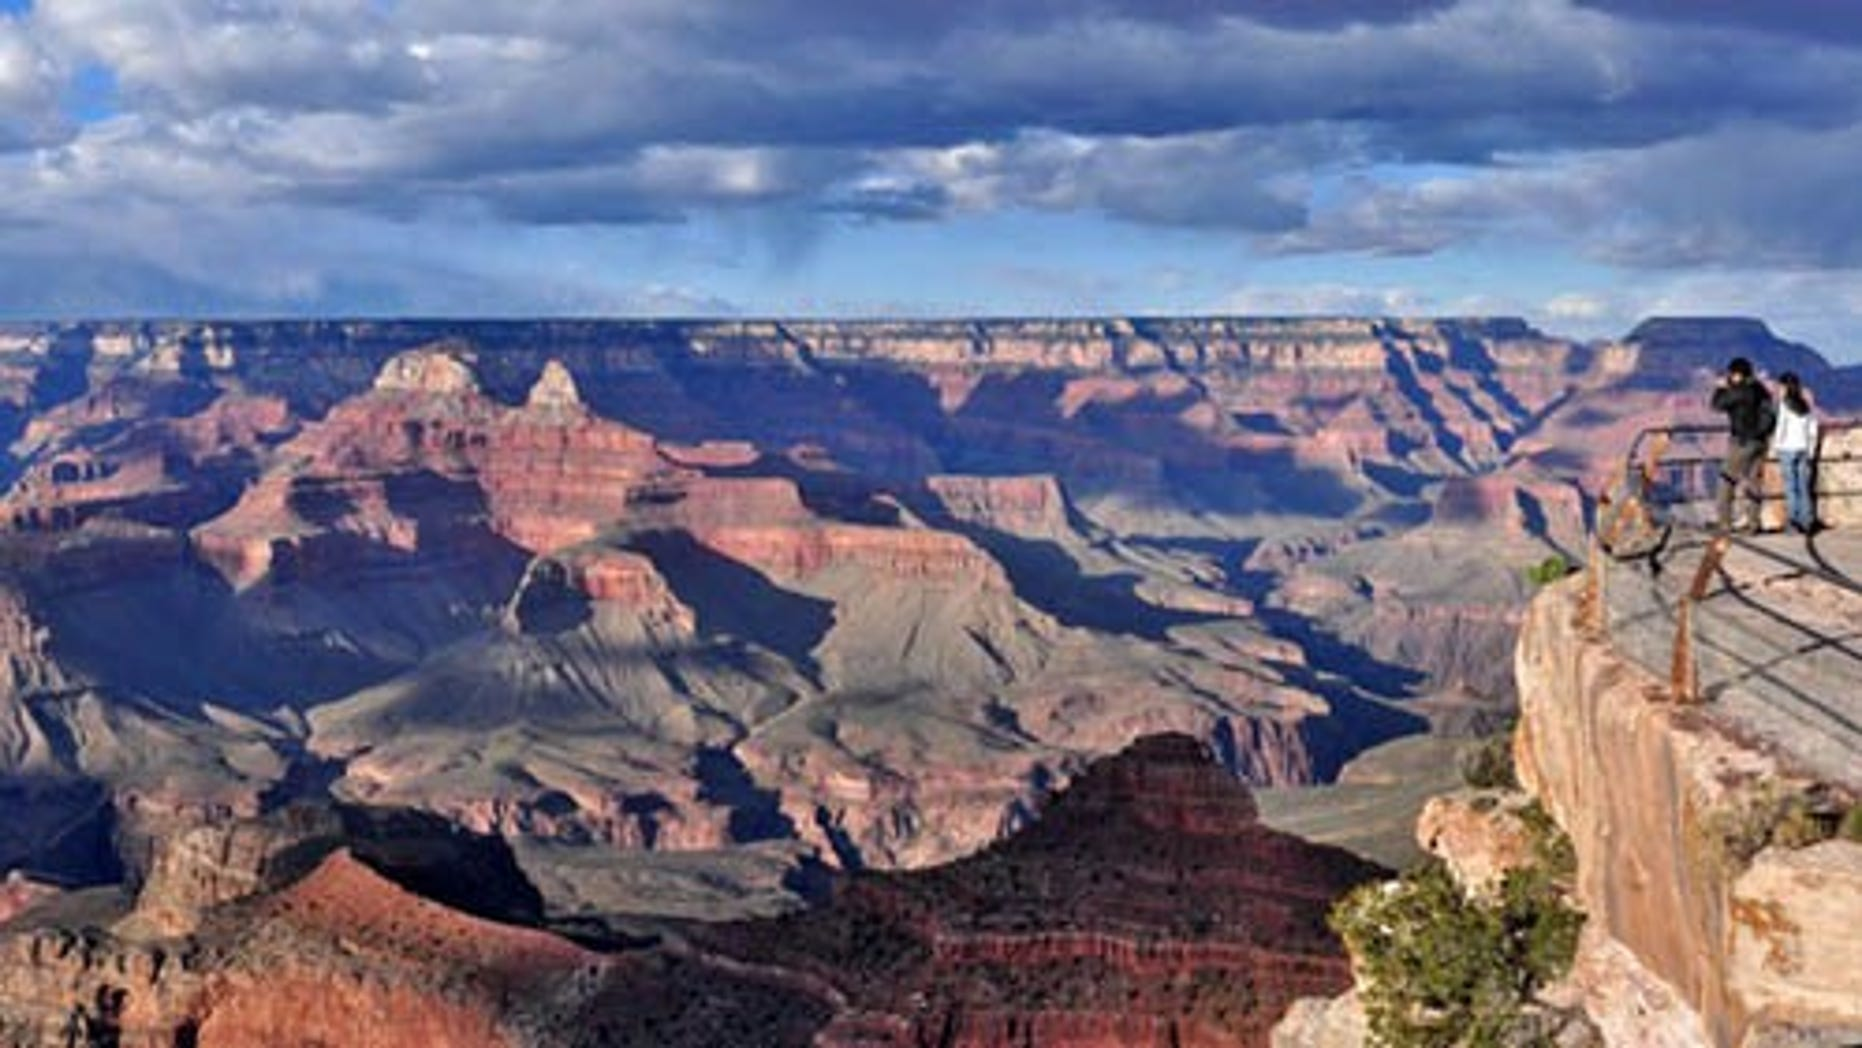 Grand Canyon Visitors May Have Been Exposed To Radiation, Says Safety Manager